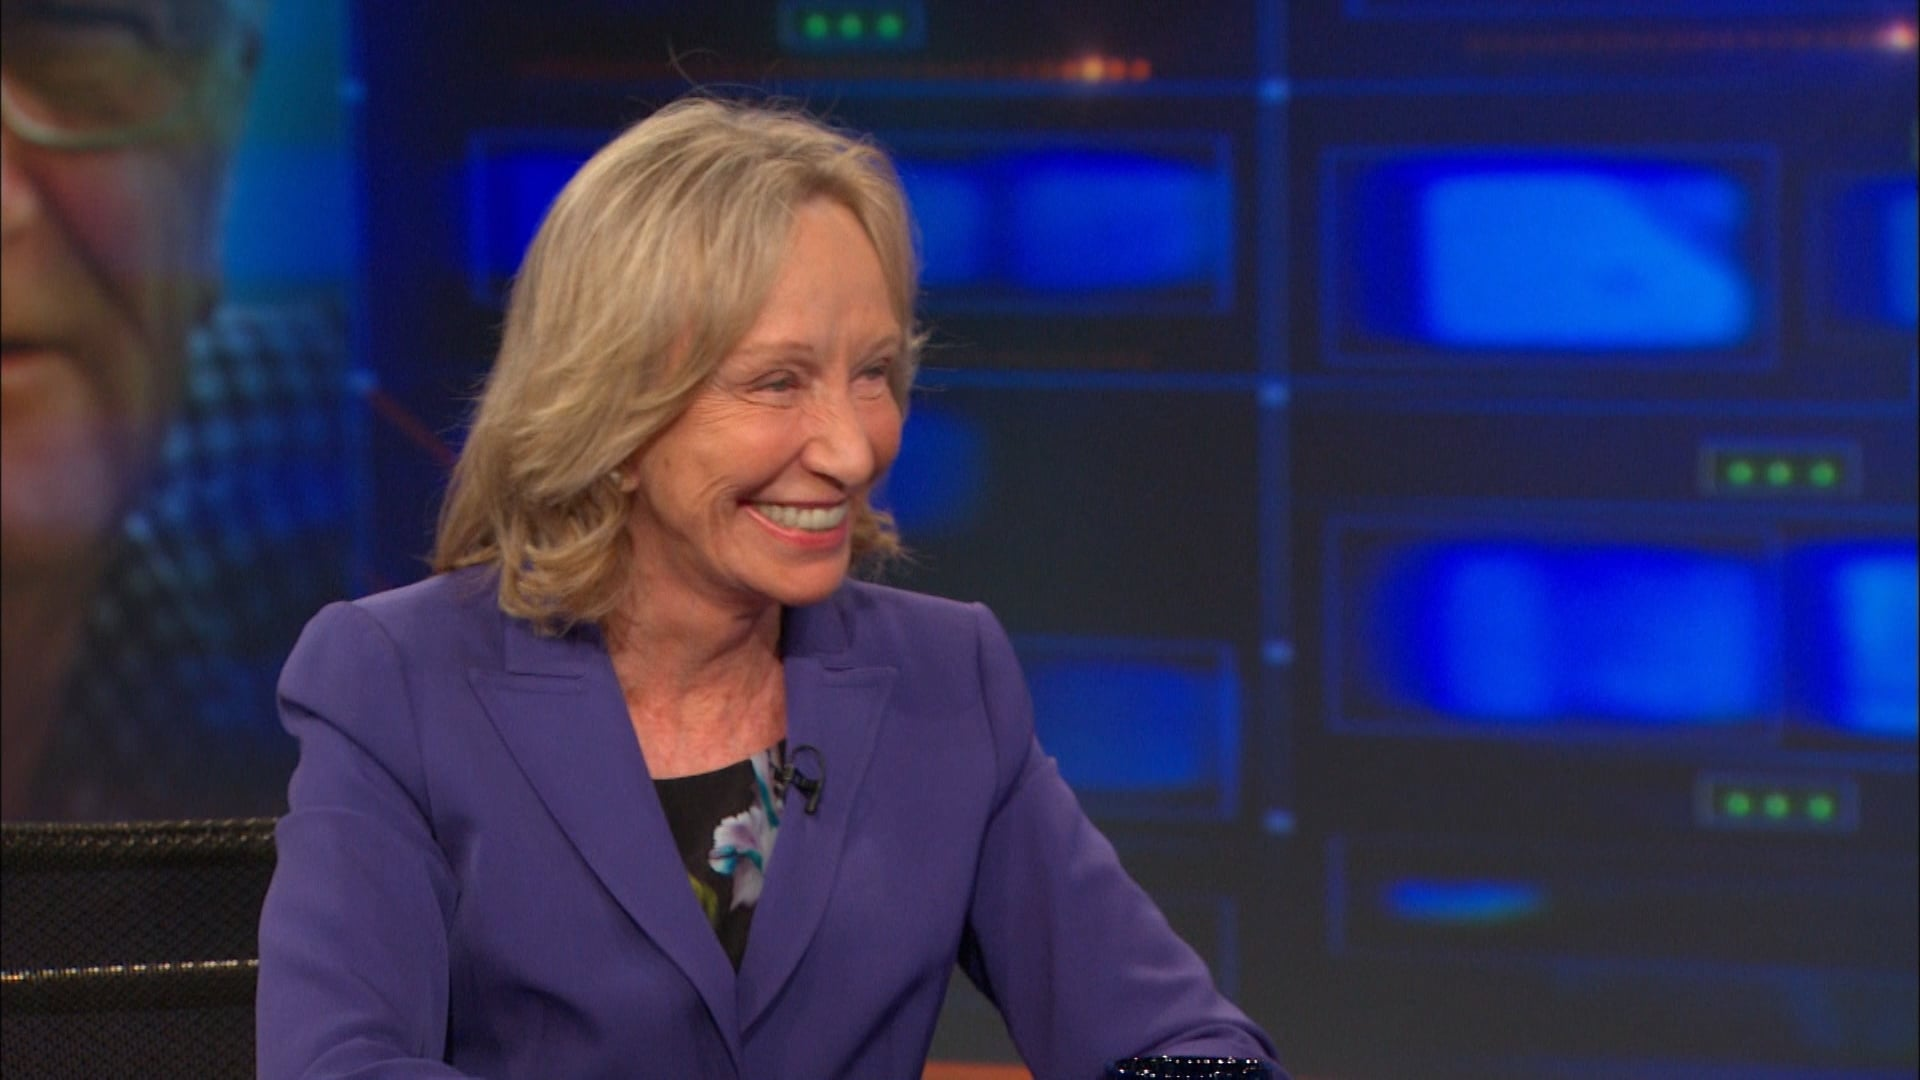 The Daily Show with Trevor Noah Season 20 :Episode 137  Doris Kearns Goodwin